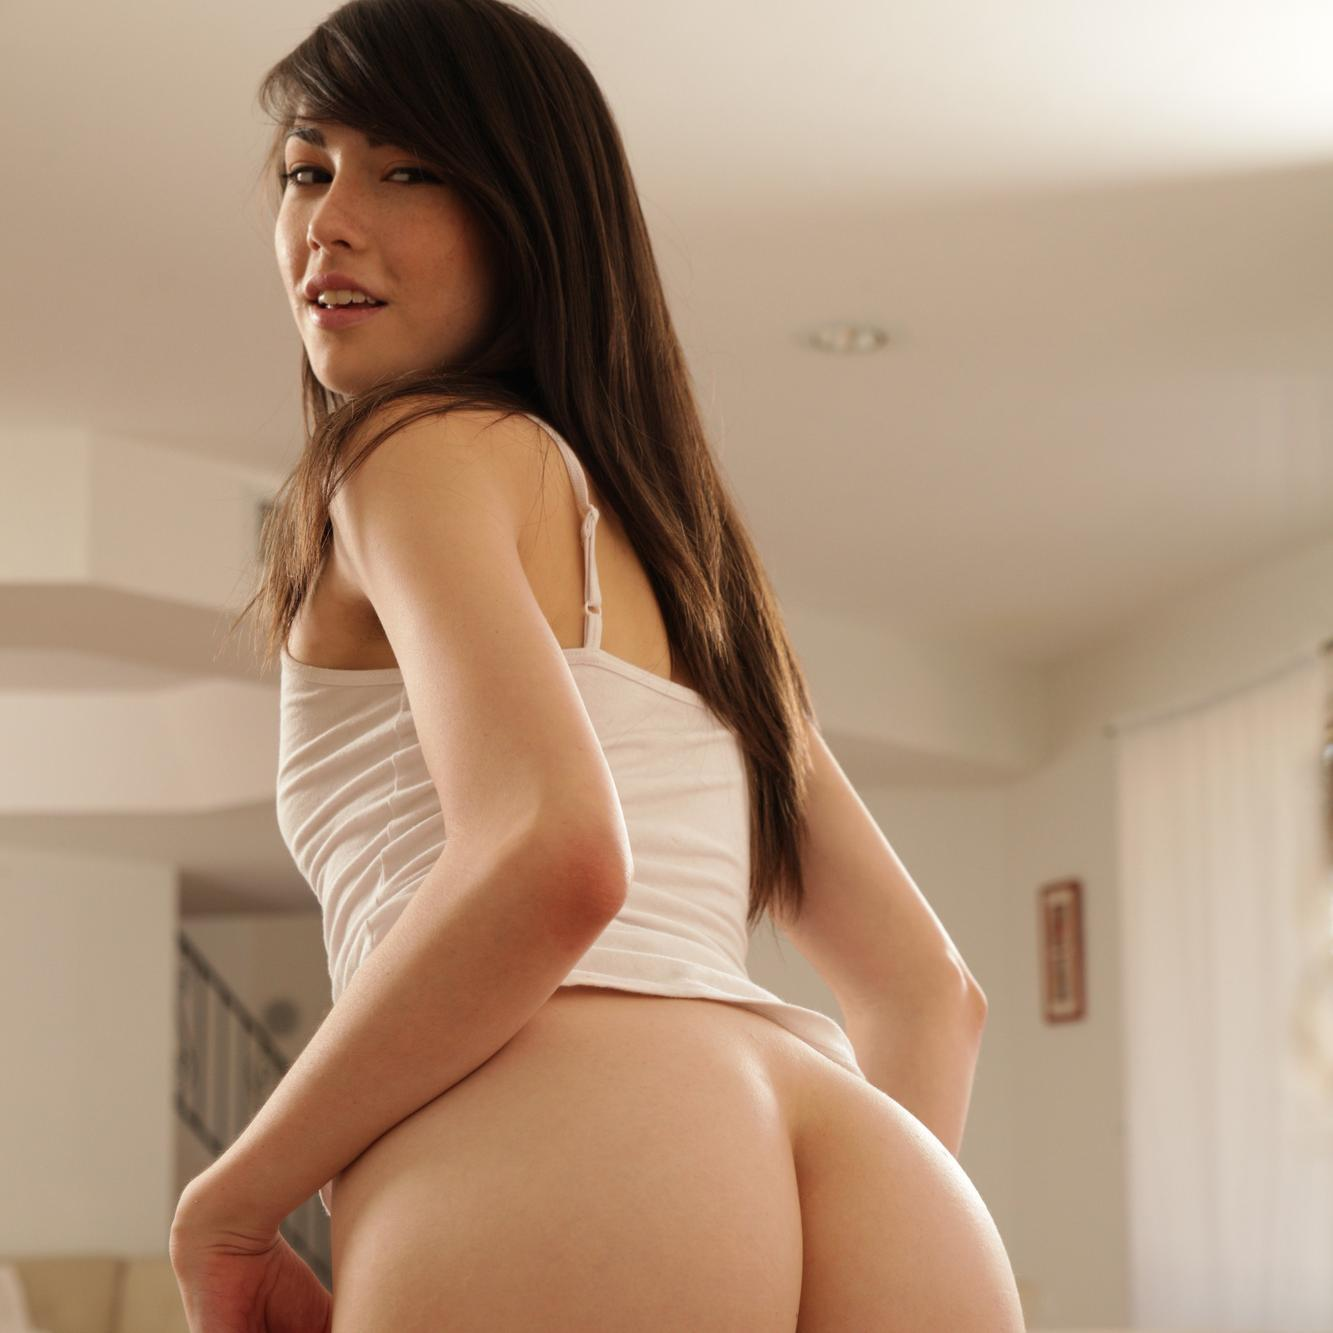 Teen Actores Hd Sex Pic 35